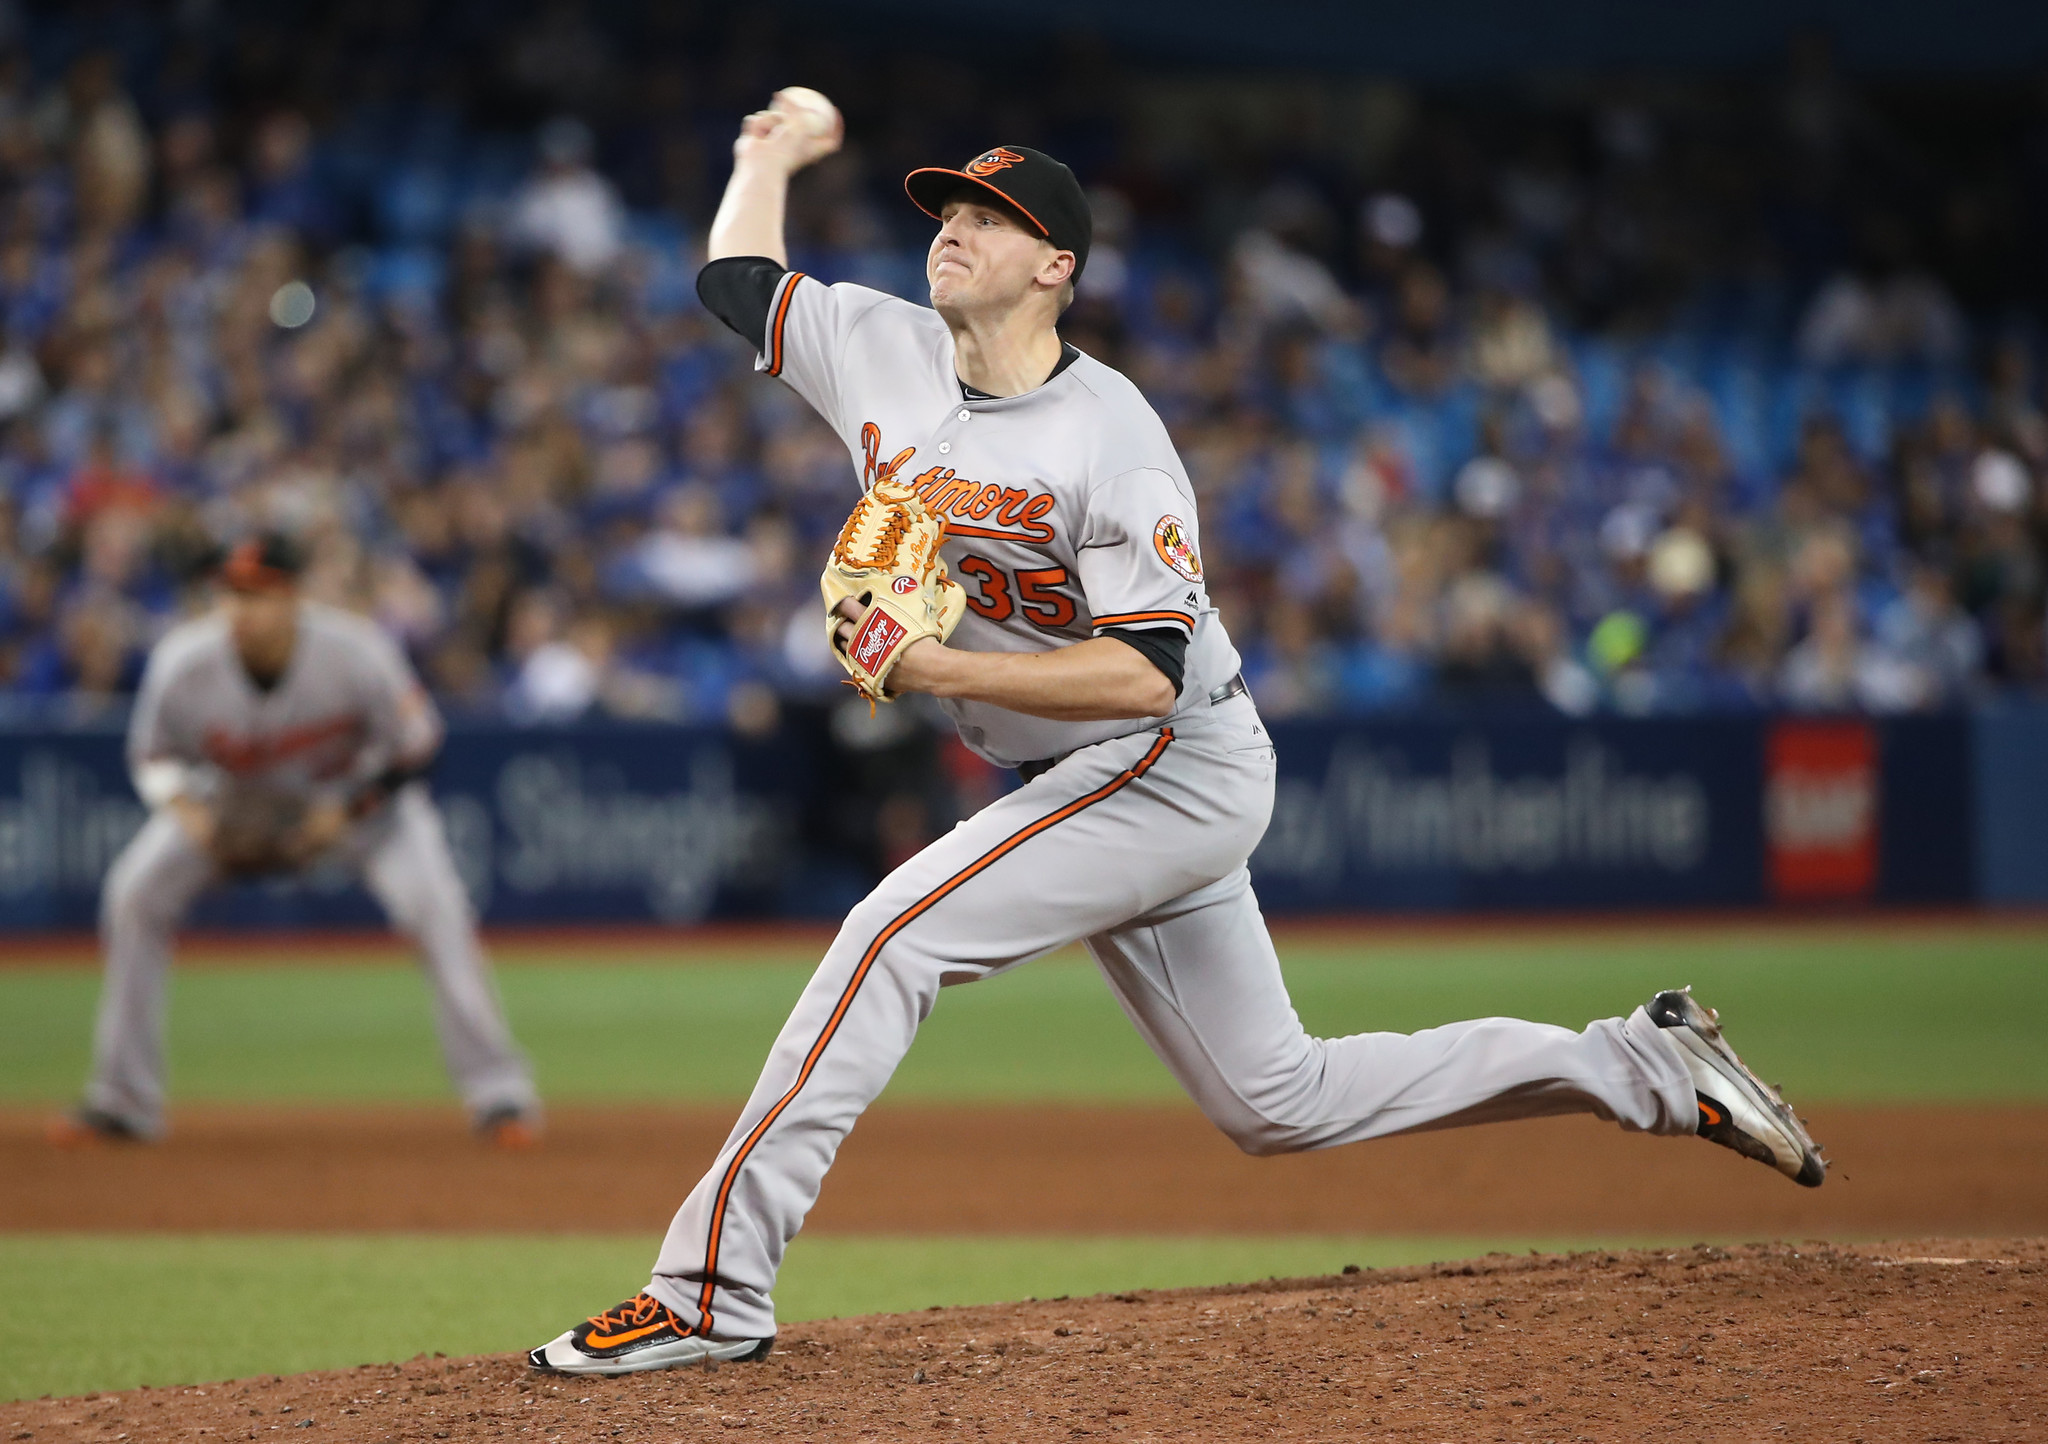 Bal-orioles-offseason-positional-roundup-relief-pitcher-20161020